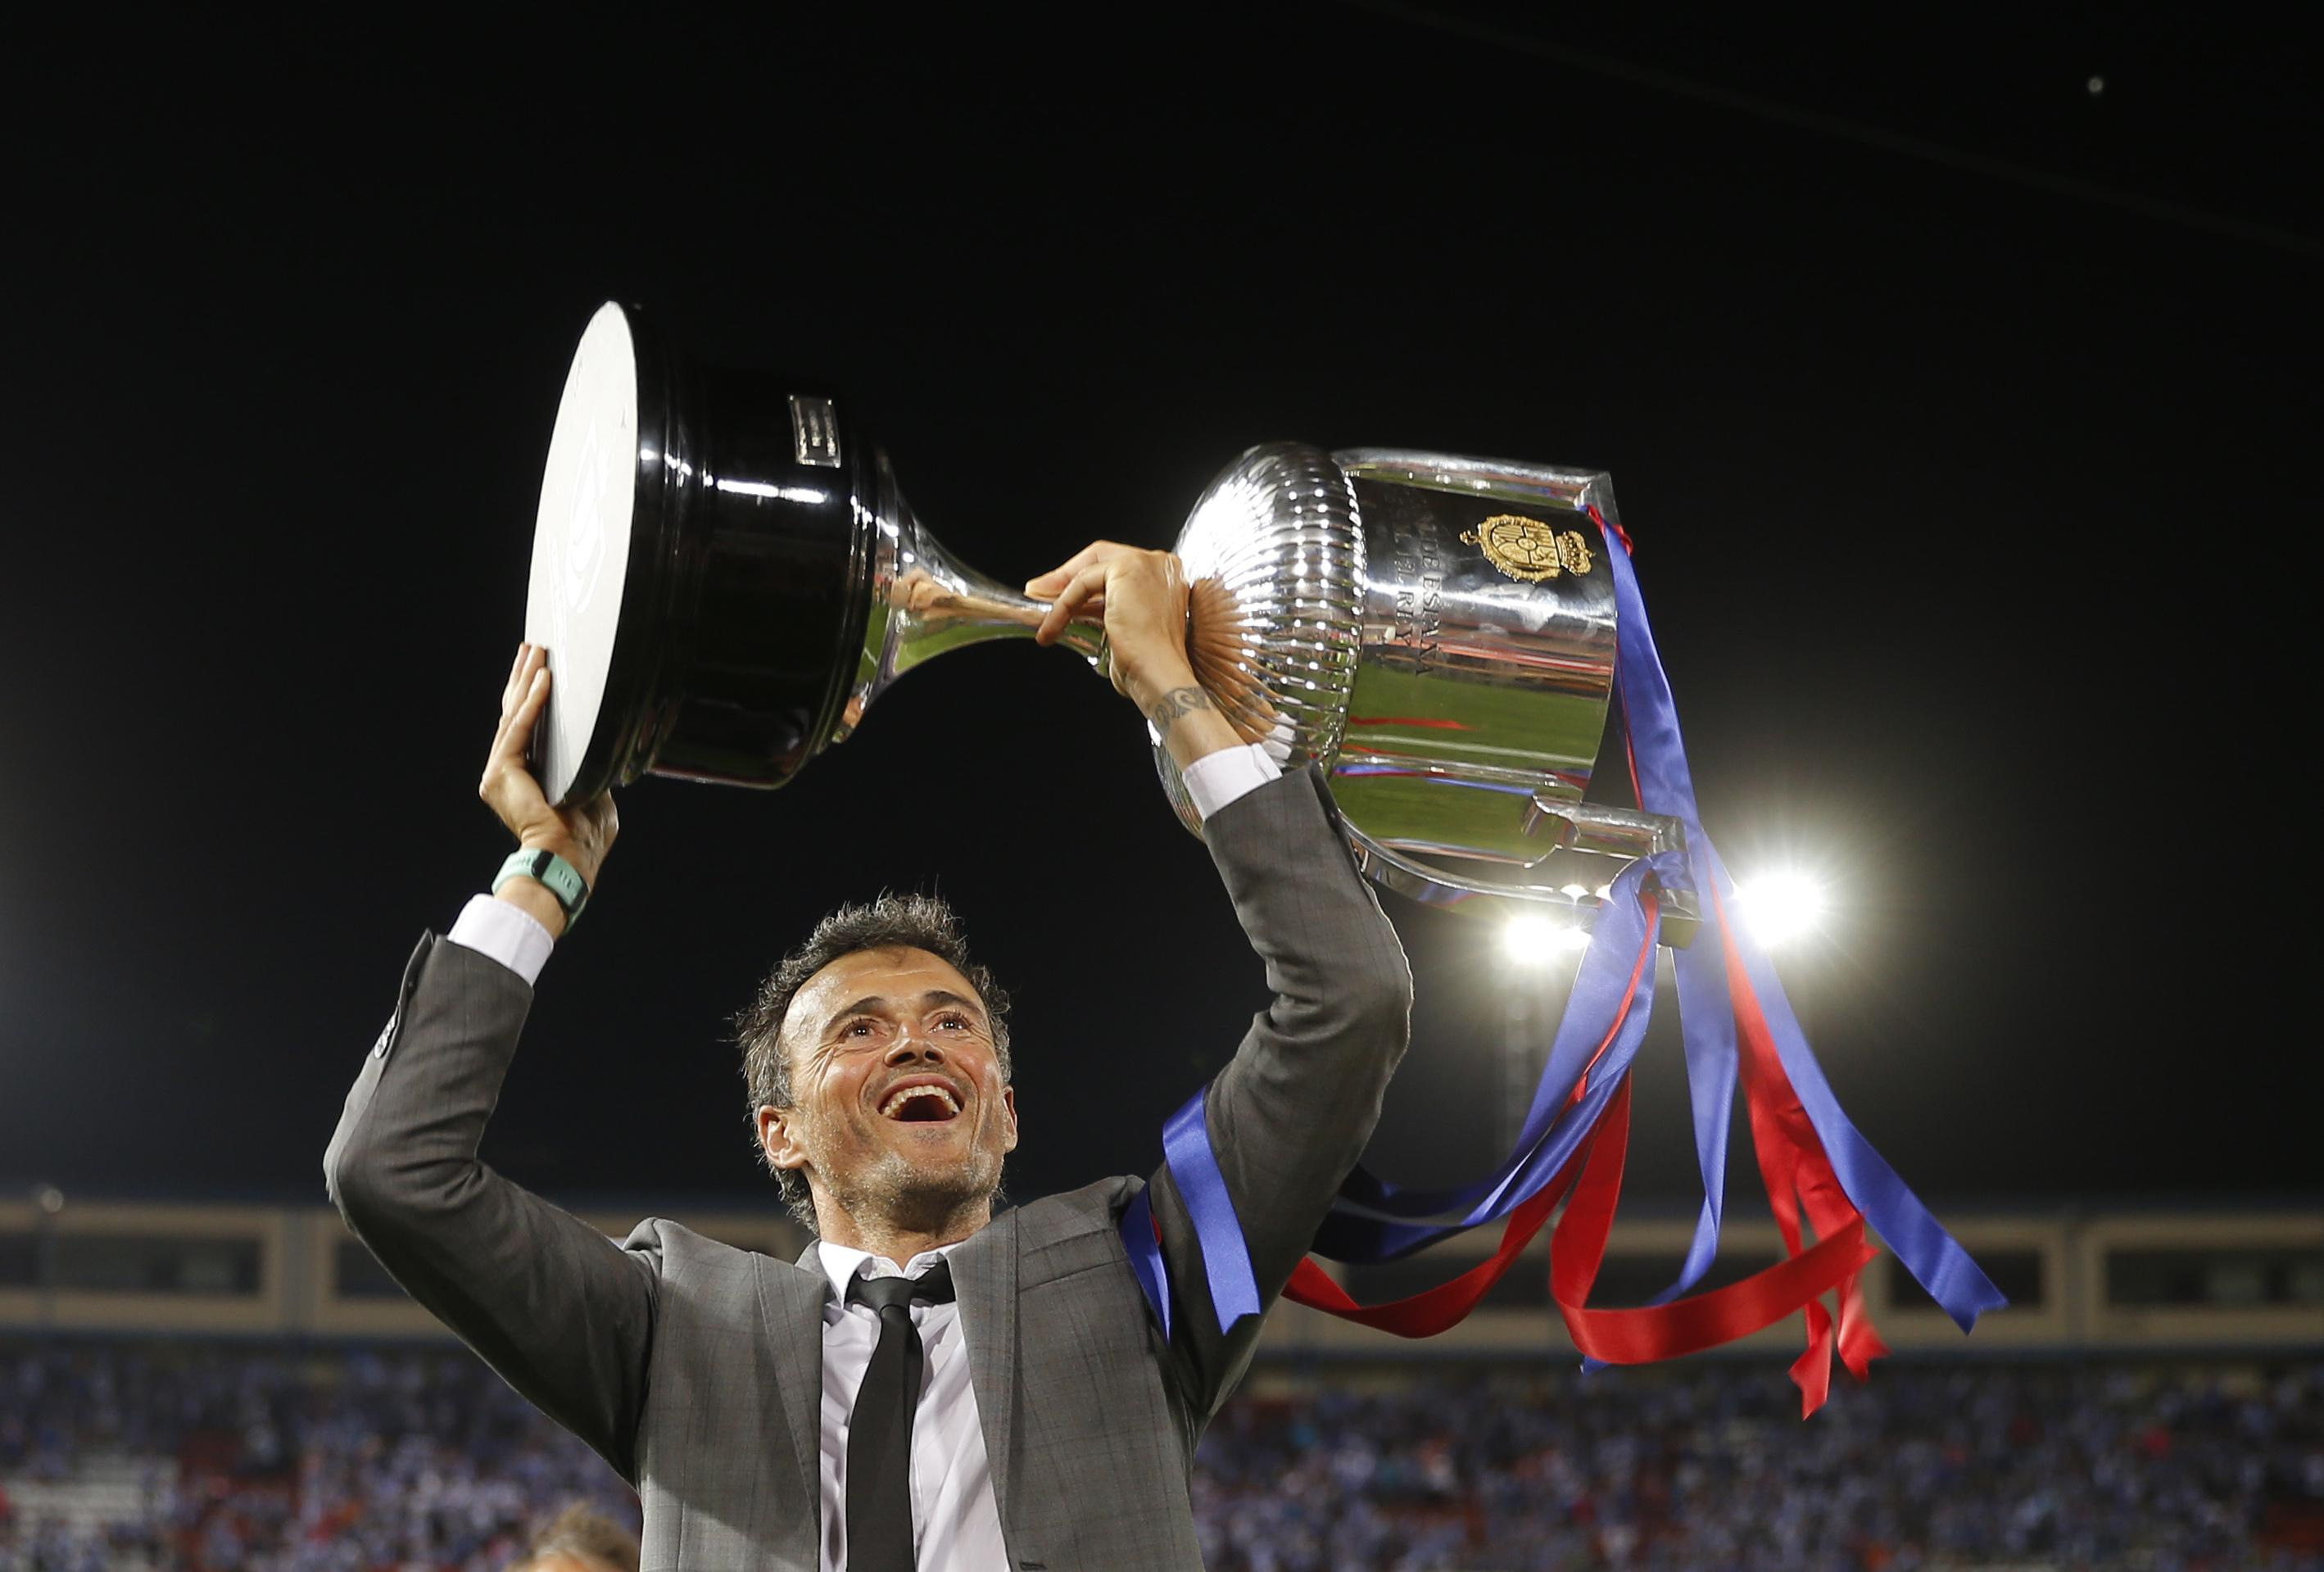 Luis Enrique has emerged as Chelsea's top managerial target